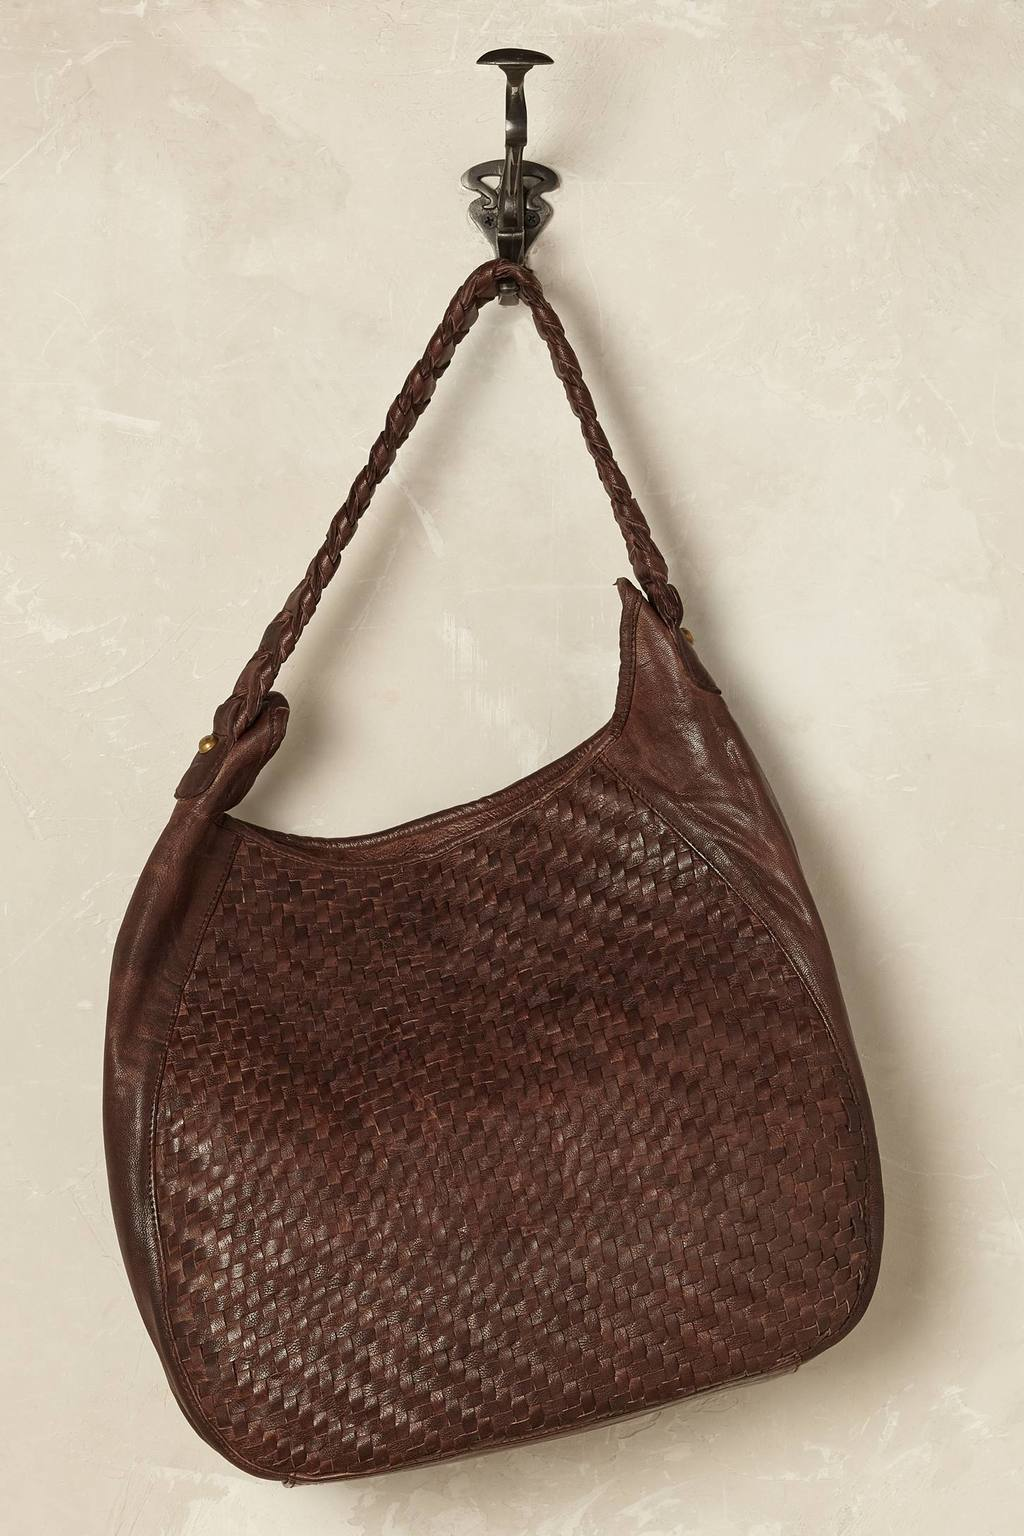 Brasilia Woven Shoulder Bag - predominant colour: chocolate brown; occasions: casual; type of pattern: standard; style: shoulder; length: shoulder (tucks under arm); size: standard; material: leather; pattern: plain; finish: plain; season: s/s 2016